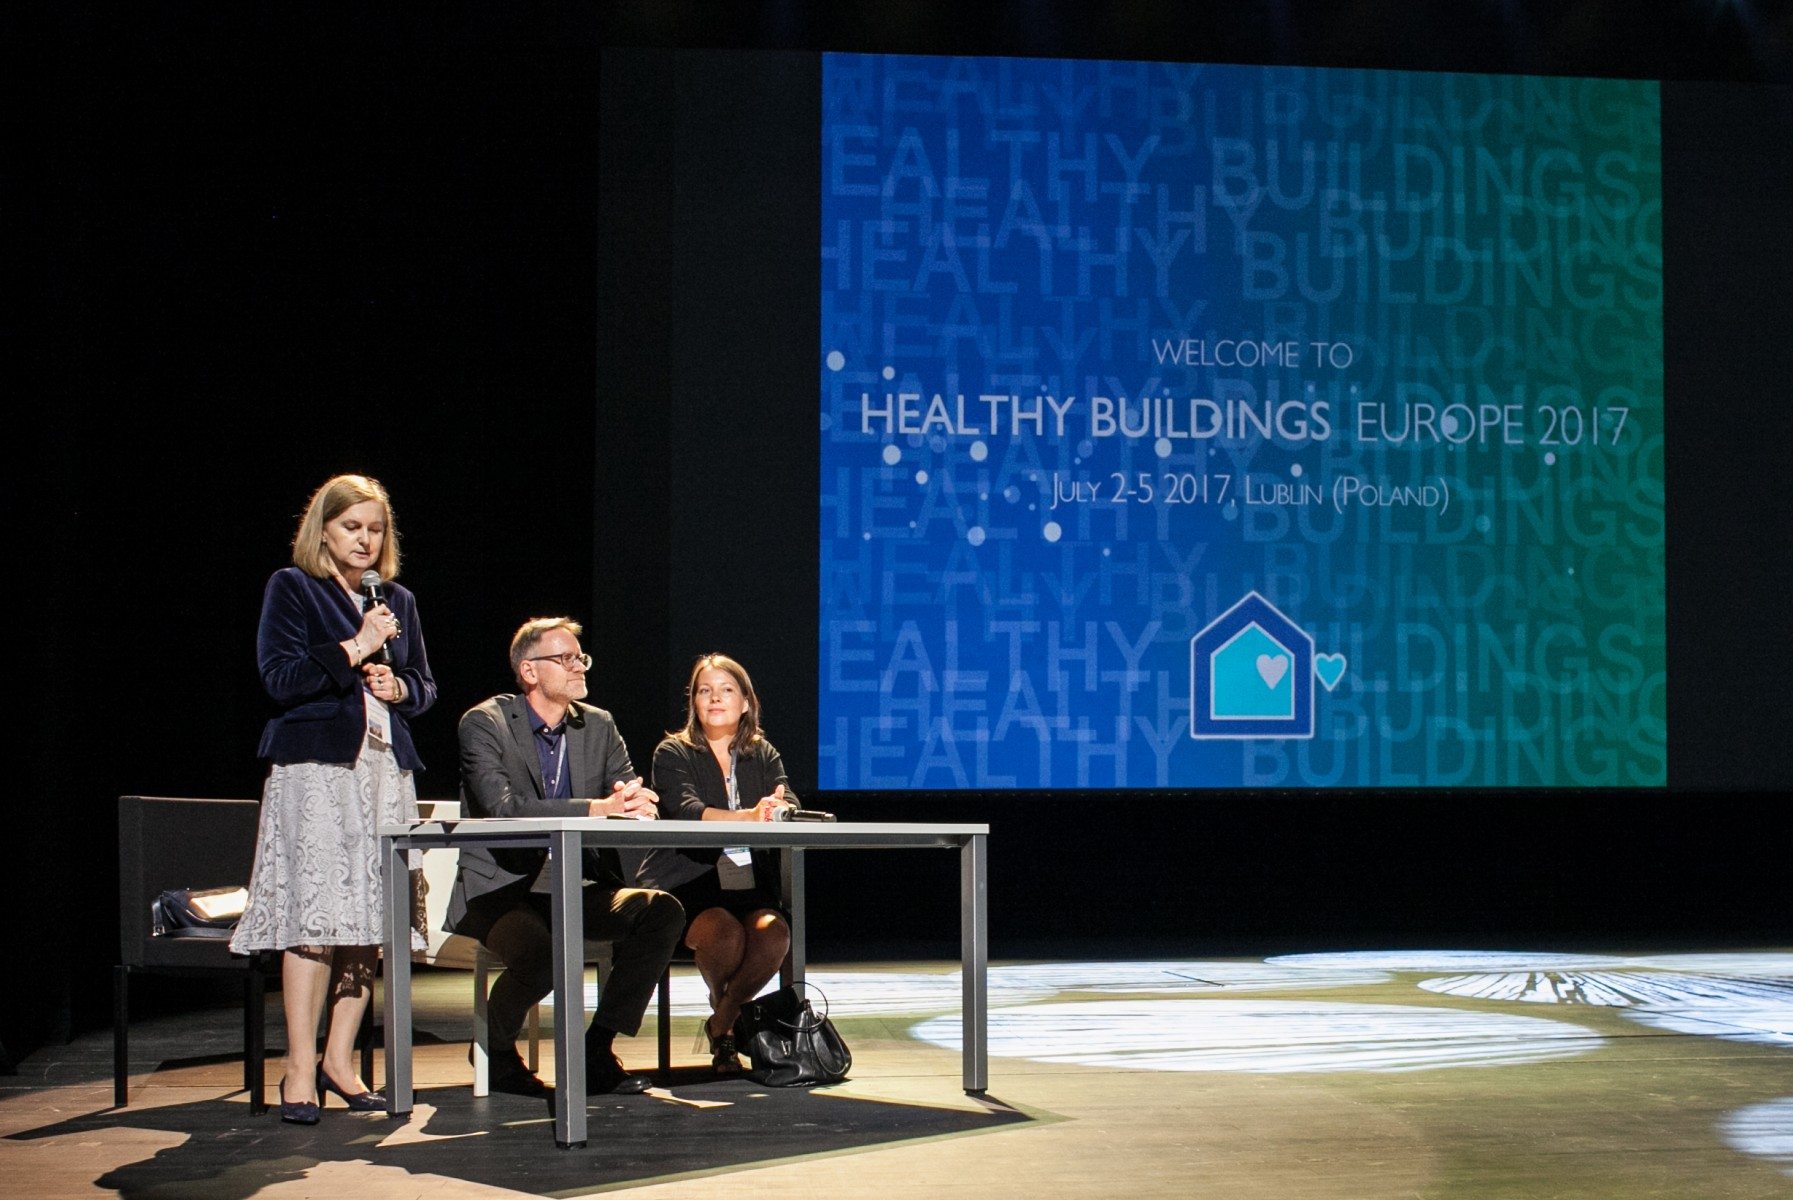 Konferencja Healthy Buildings 2017 - Europe.